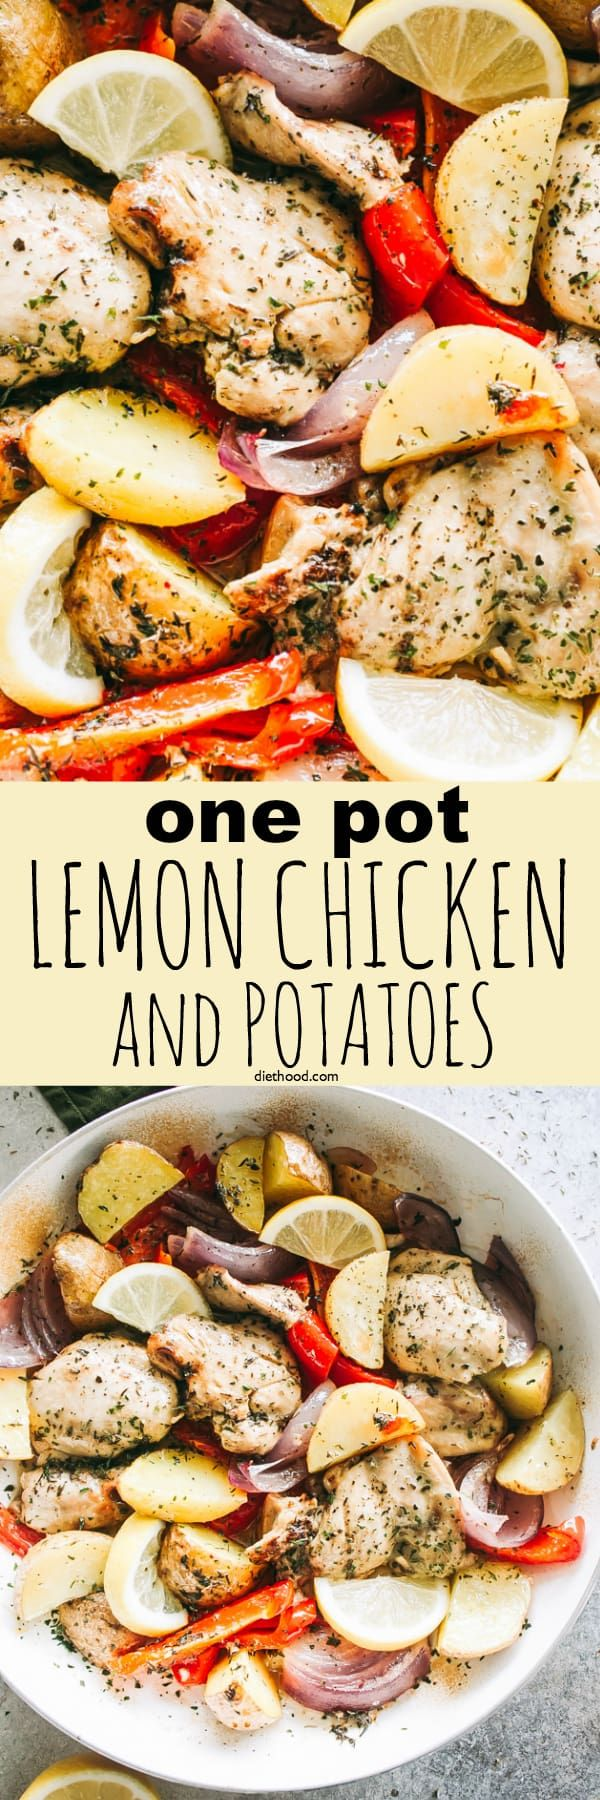 One-Pot Lemon Chicken and Potatoes – This super easy, amazingly flavored dish with lemon chicken, veggies, and potatoes is a complete meal made all in one pot! #chickendinner #onepotmeals #potatoes #healthyeating